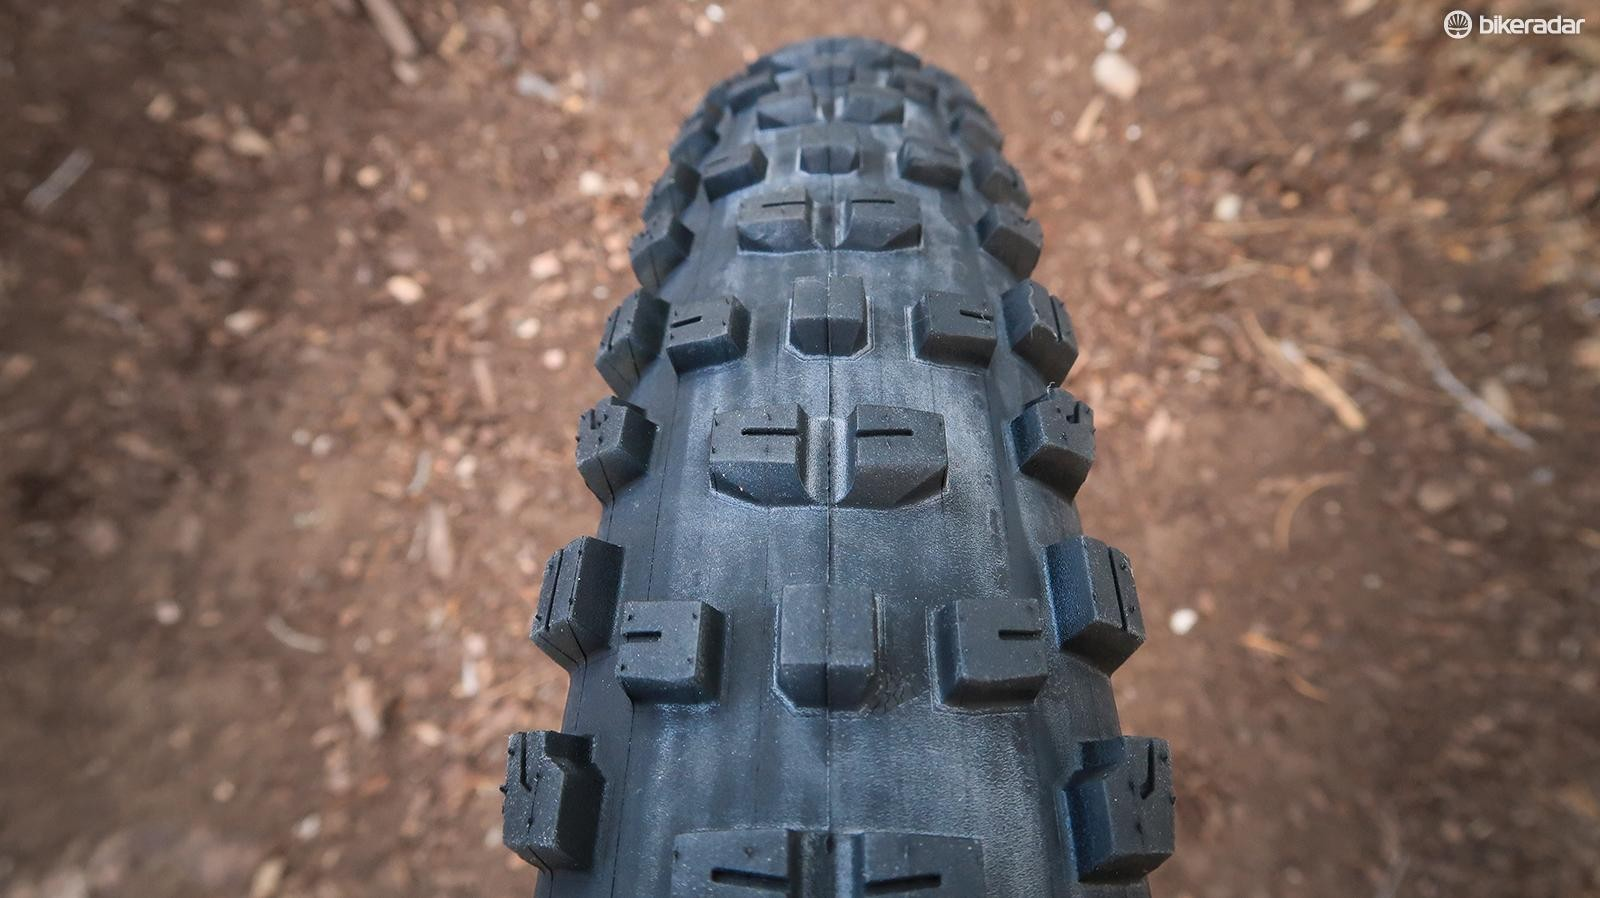 Stay tuned for impressions of this wide (but not fat) trail tire